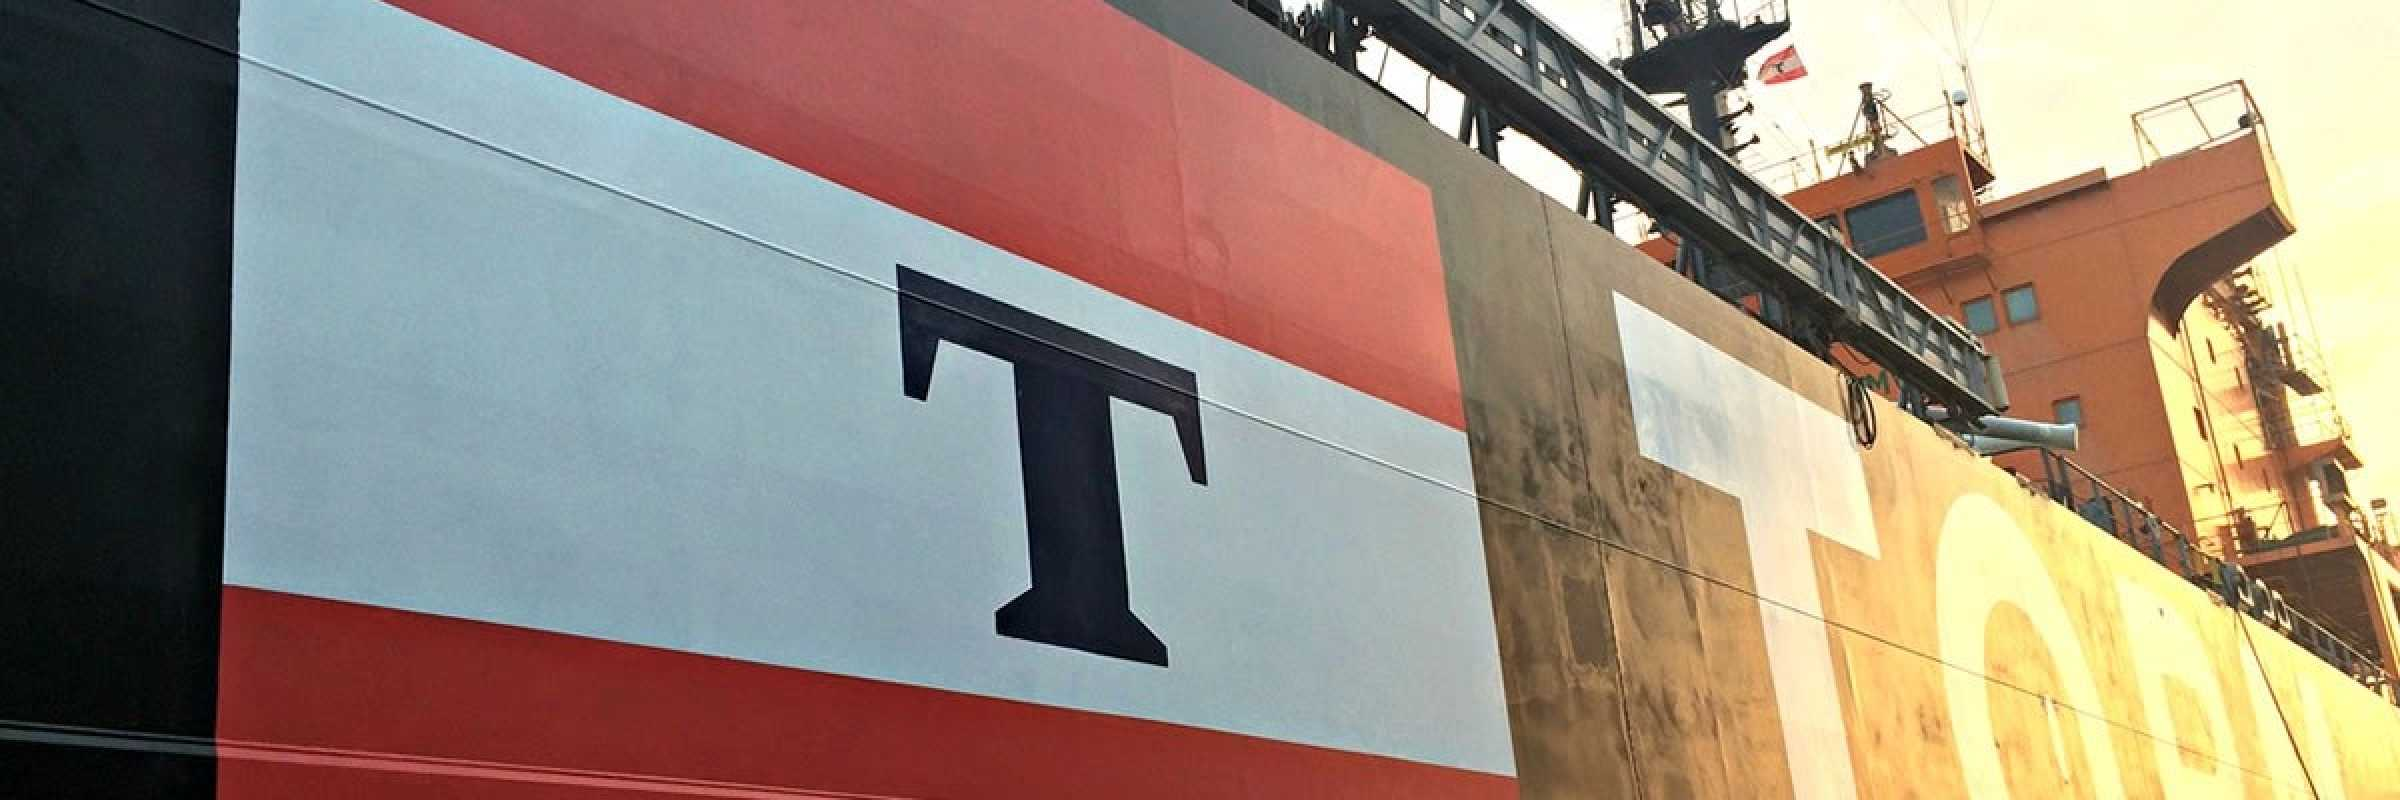 TORM takes stake in scrubber maker